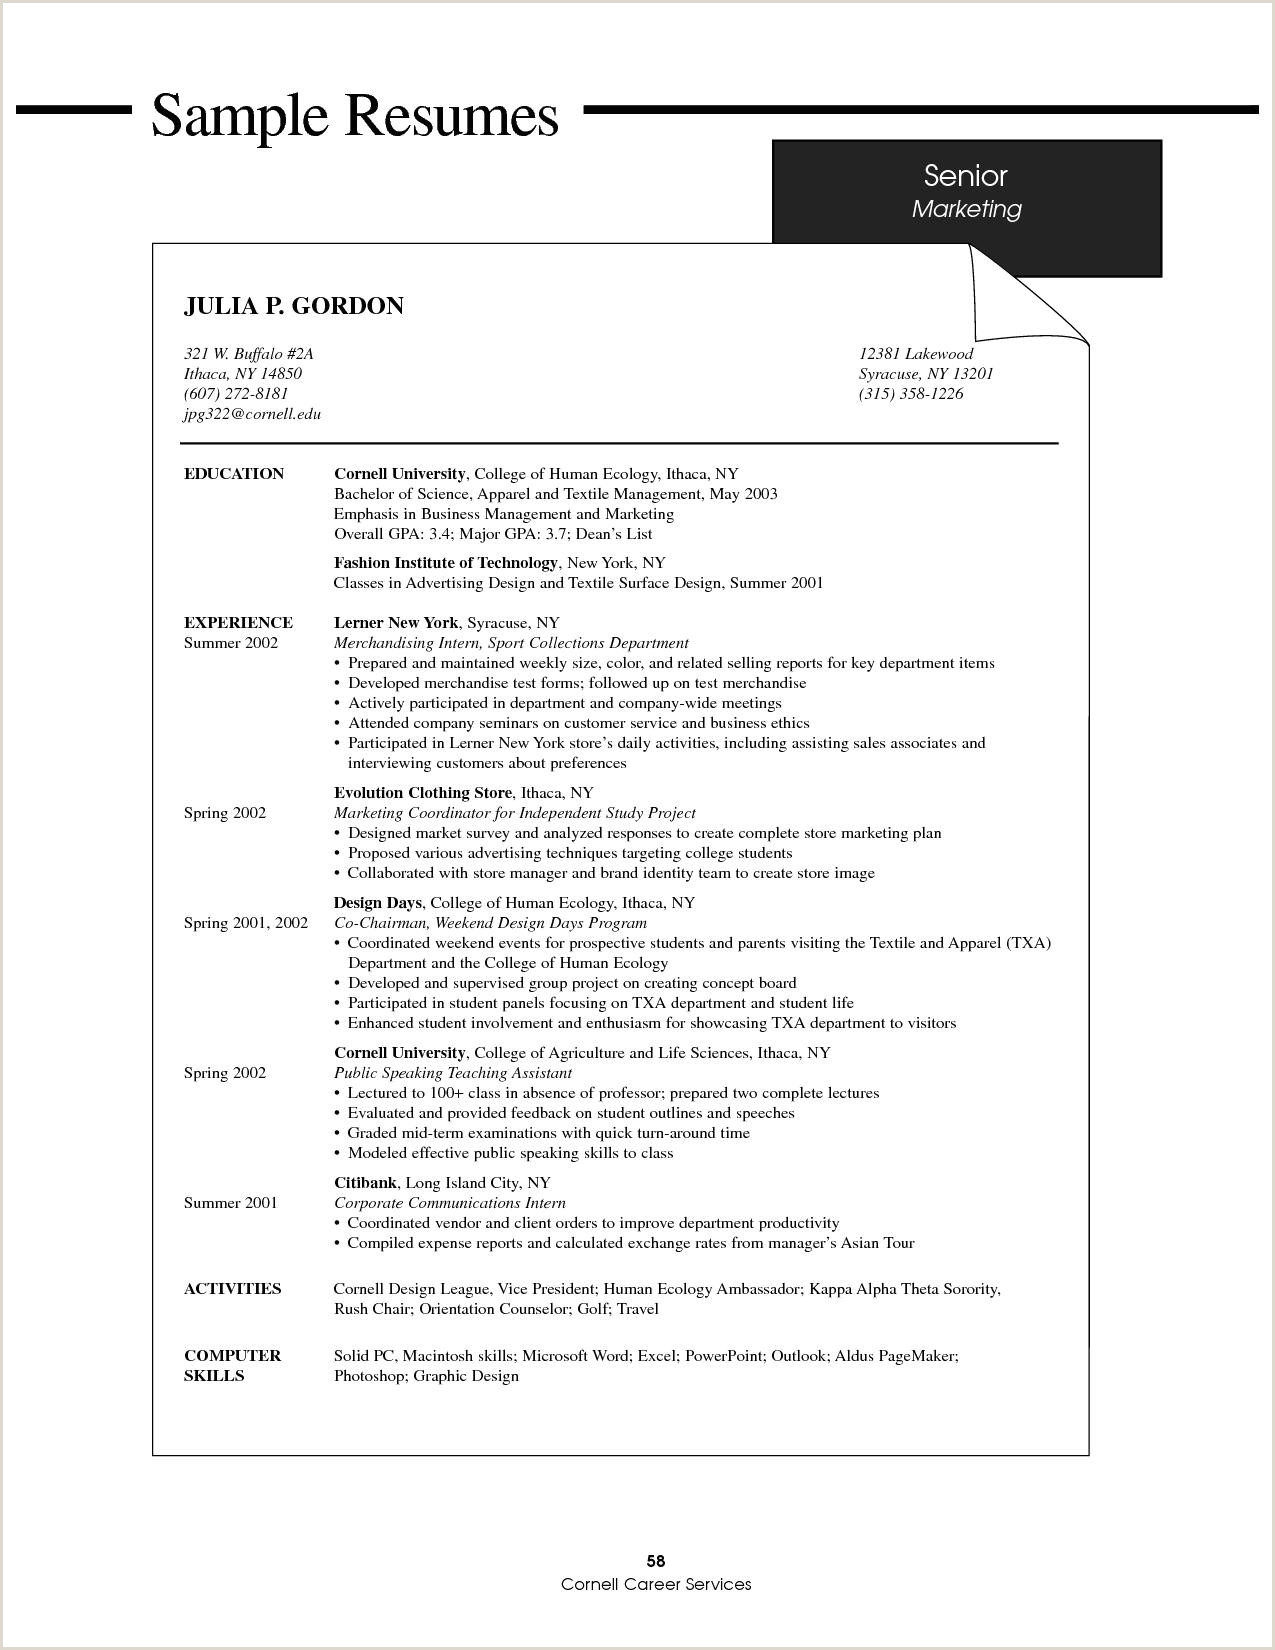 Professional Curriculum Vitae Samples Doc Cv Template Doc Best Resume format Doc Unique Fresh Resume